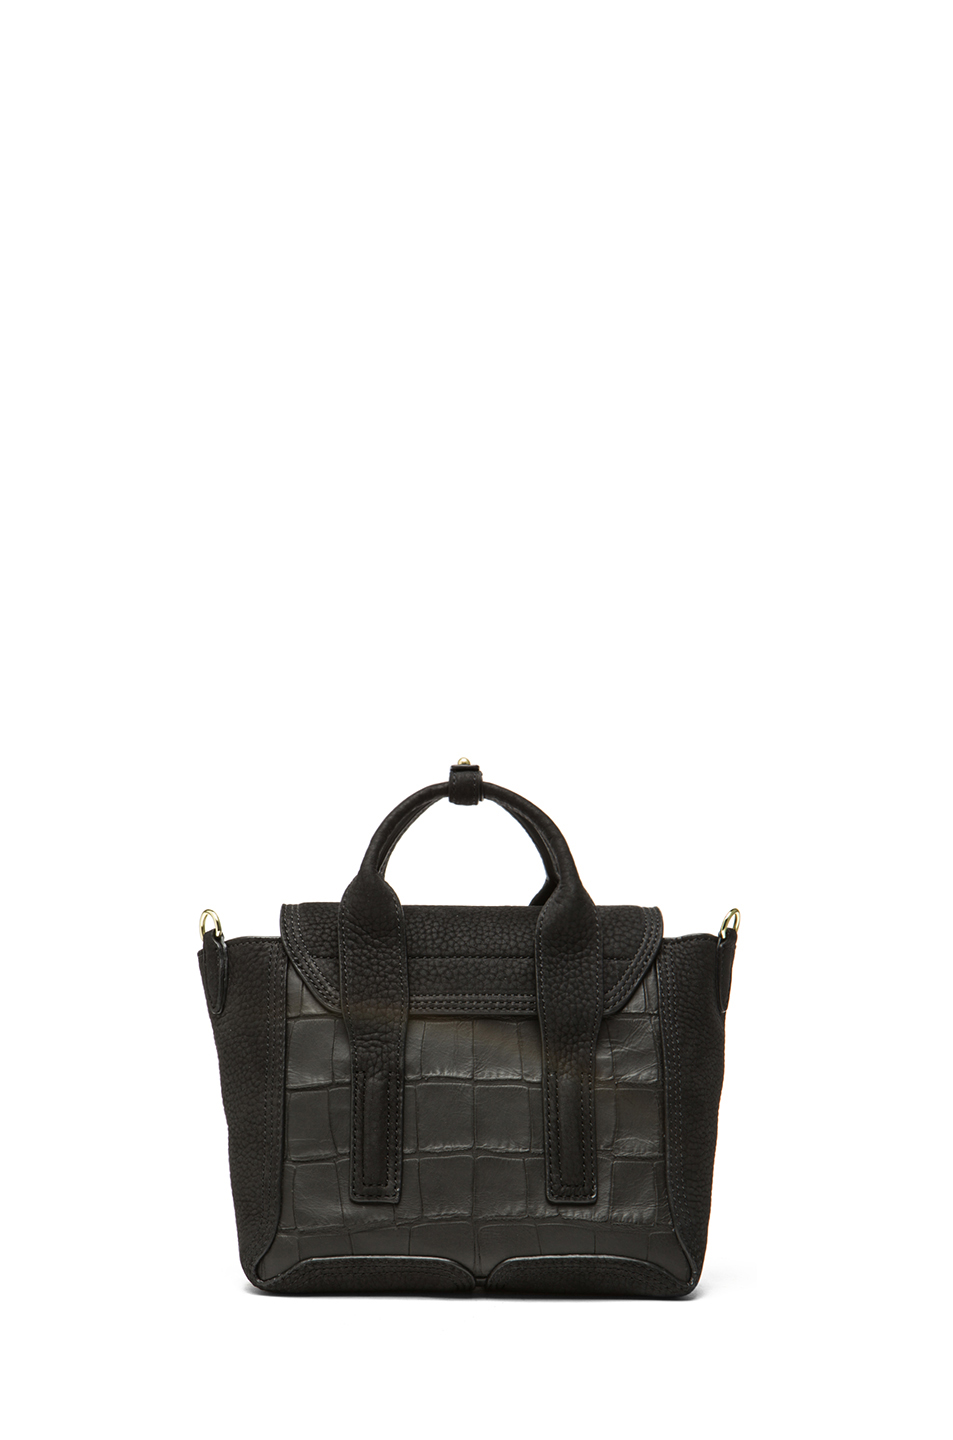 3.1 phillip lim|Mini Pashli Satchel in Black Croc